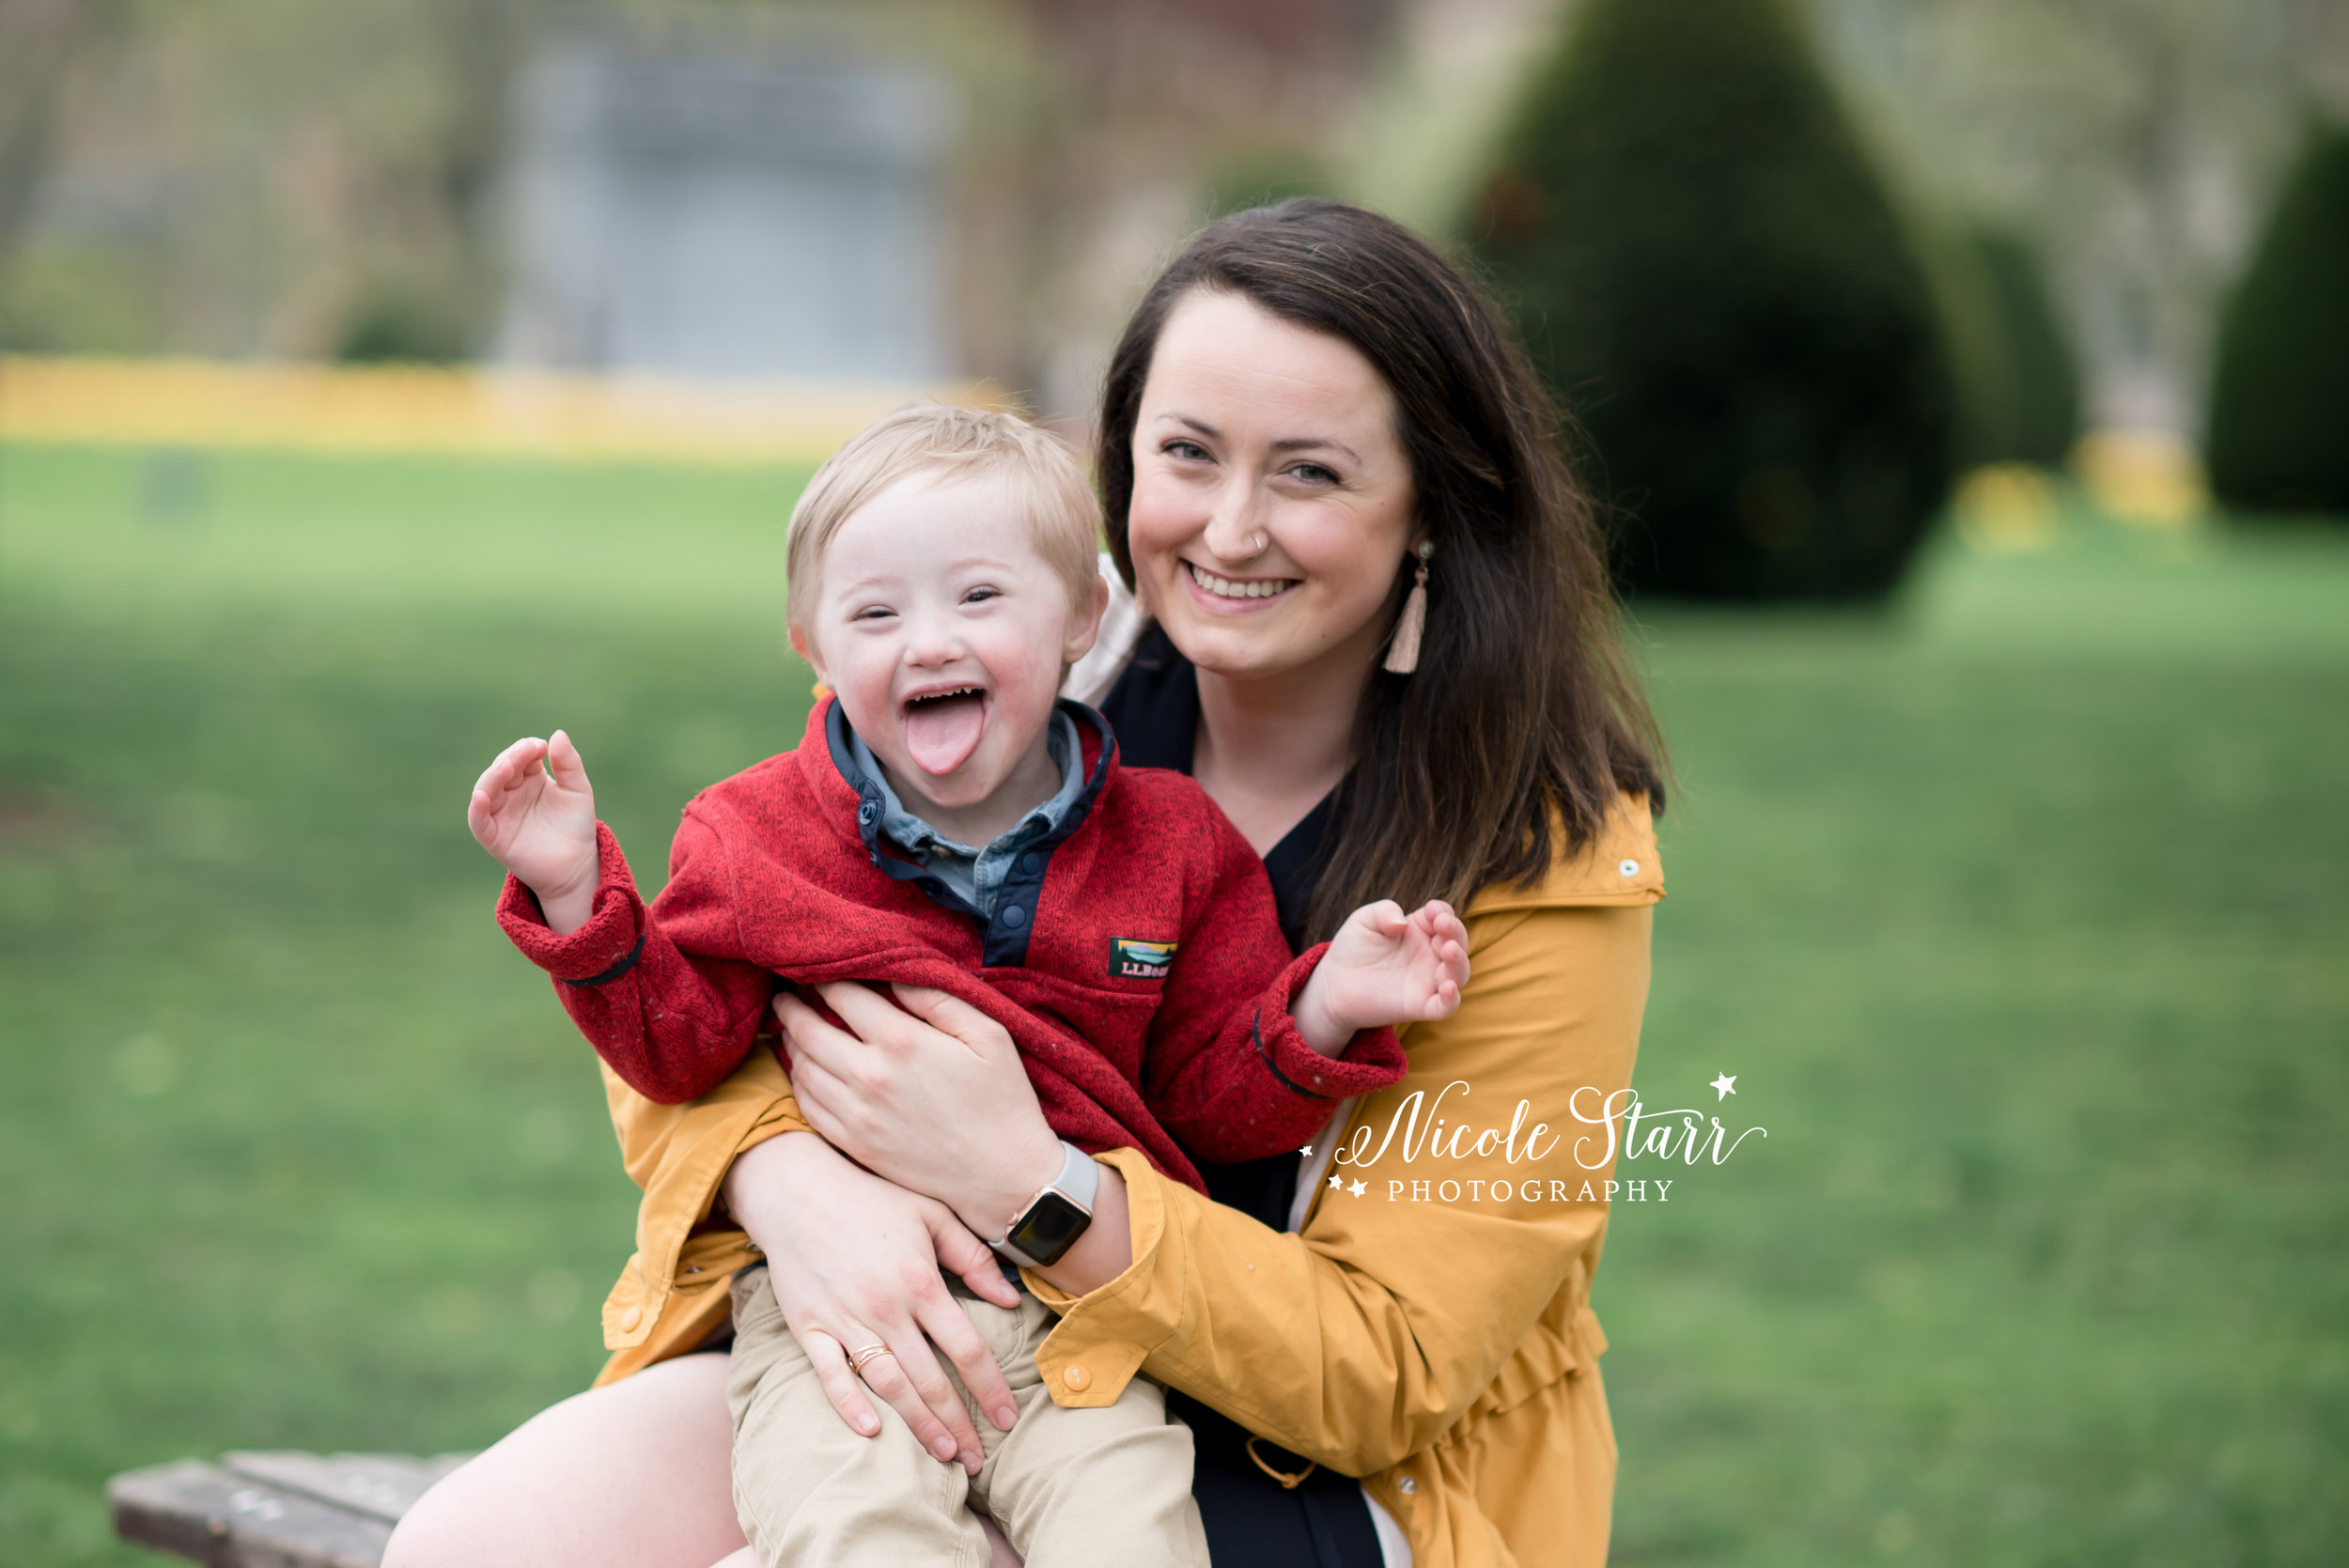 Nicole Starr Photography | Saratoga Springs Family Photographer | Boston Family Photographer | Upstate NY Family Photographer | Family Photographer | Delmar NY Family Photographer | Loudonville NY Family Photographer, mommy and me session, mommy and me, Boston Public Gardens, mom and me